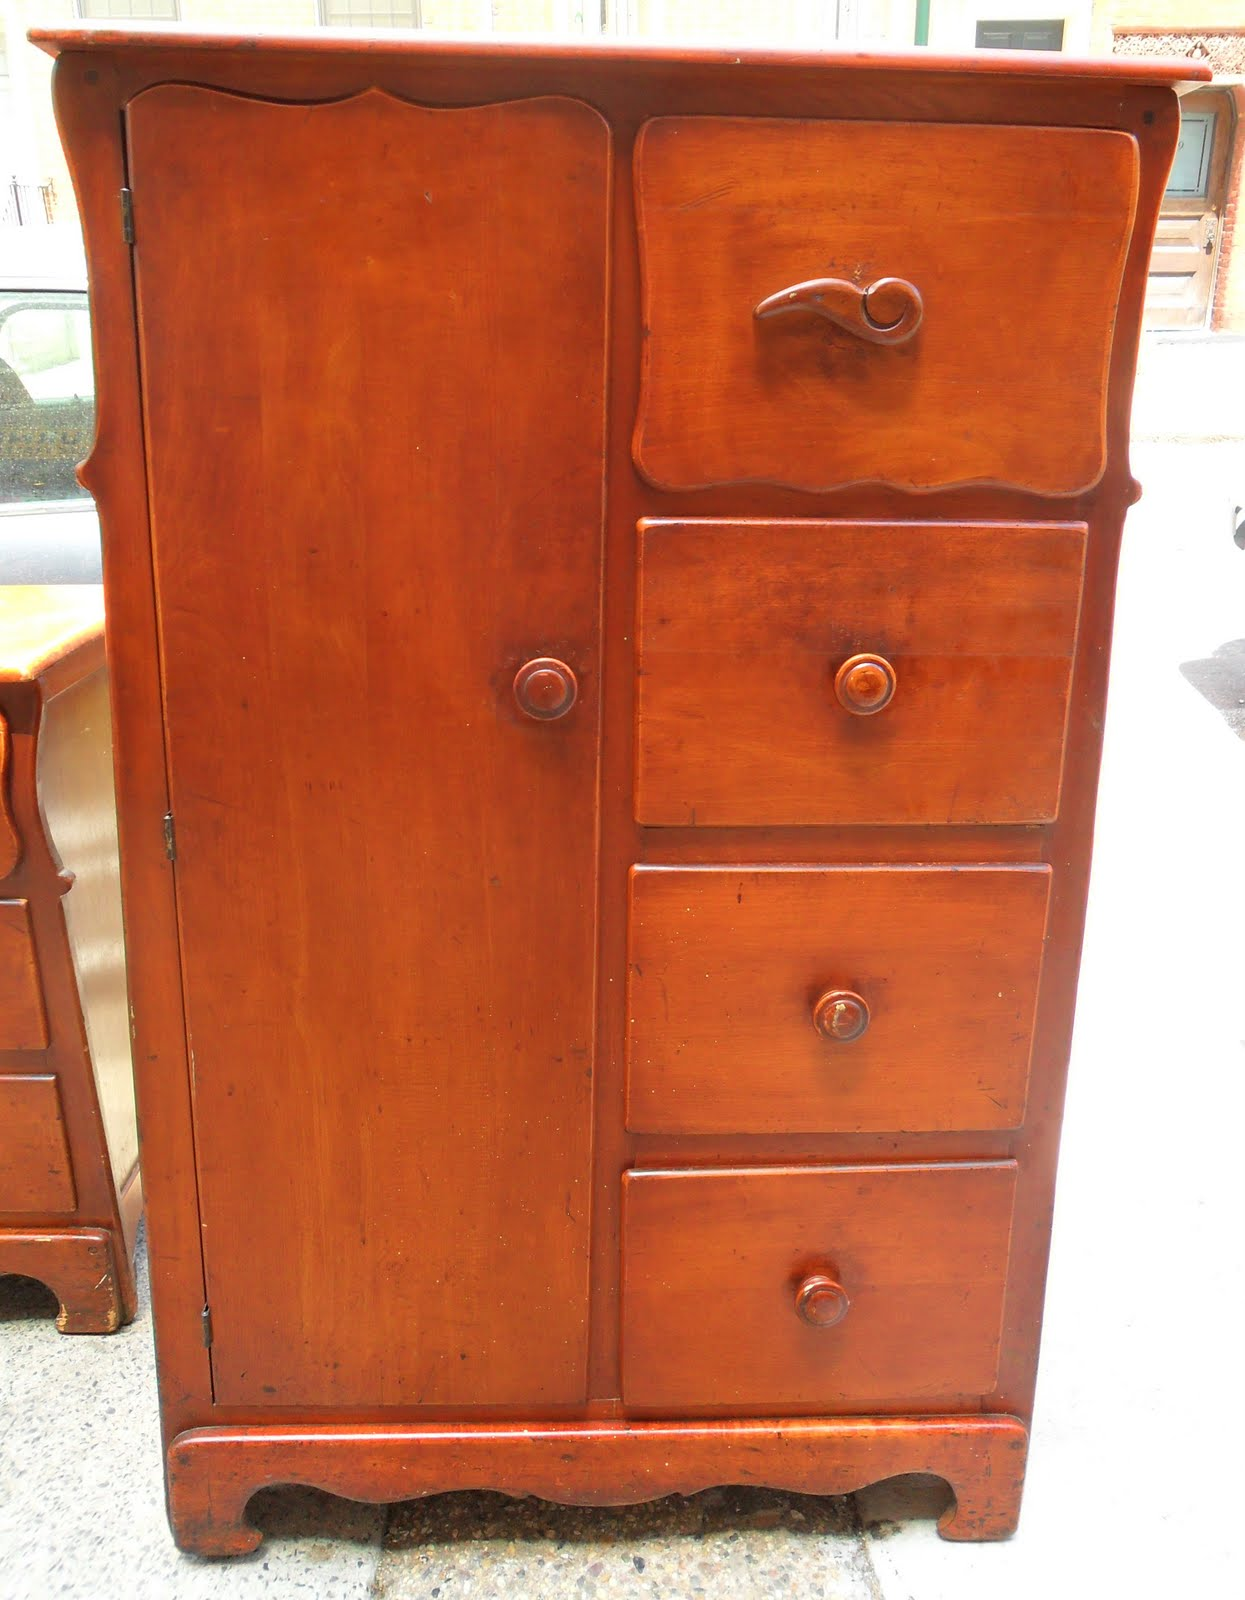 uhuru furniture collectibles 1940s rock maple bedroom set sold rh uhurufurniturephilly blogspot com 1920s bedroom furniture value 1940's bedroom furniture